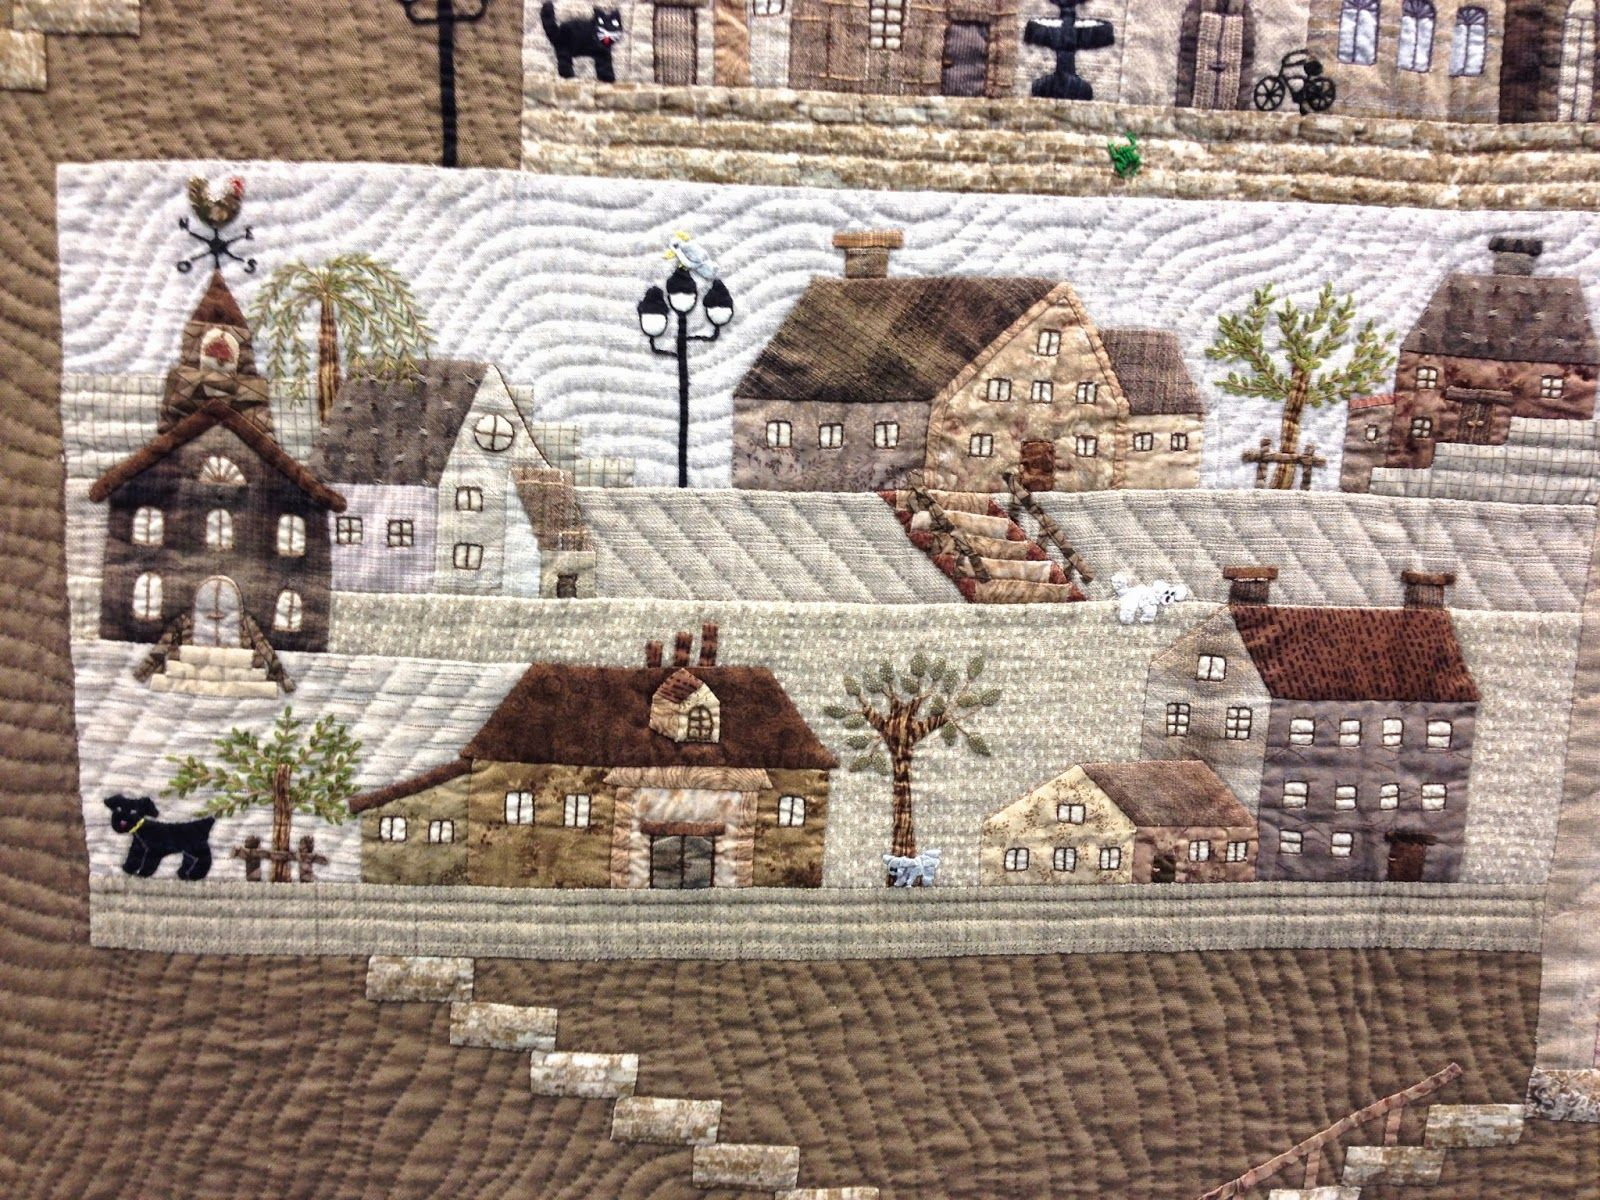 At the 20th European Patchwork Meeting in Alsace, France, Quiltmania ...